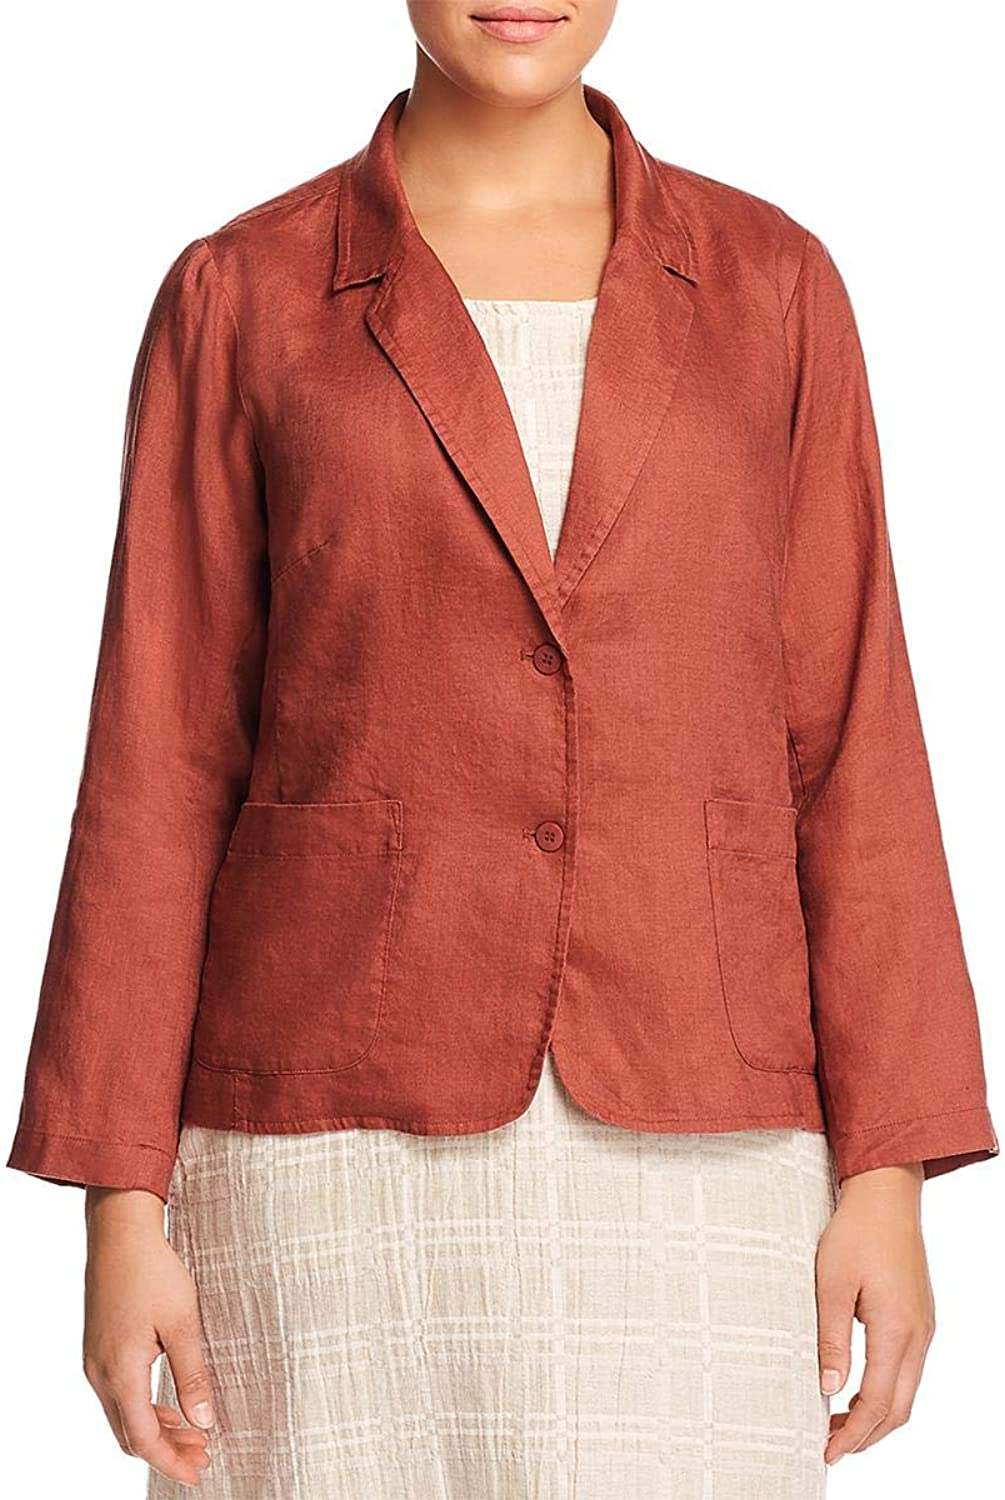 EileenFisher Womens Plus Linen Shaped TwoButton Blazer